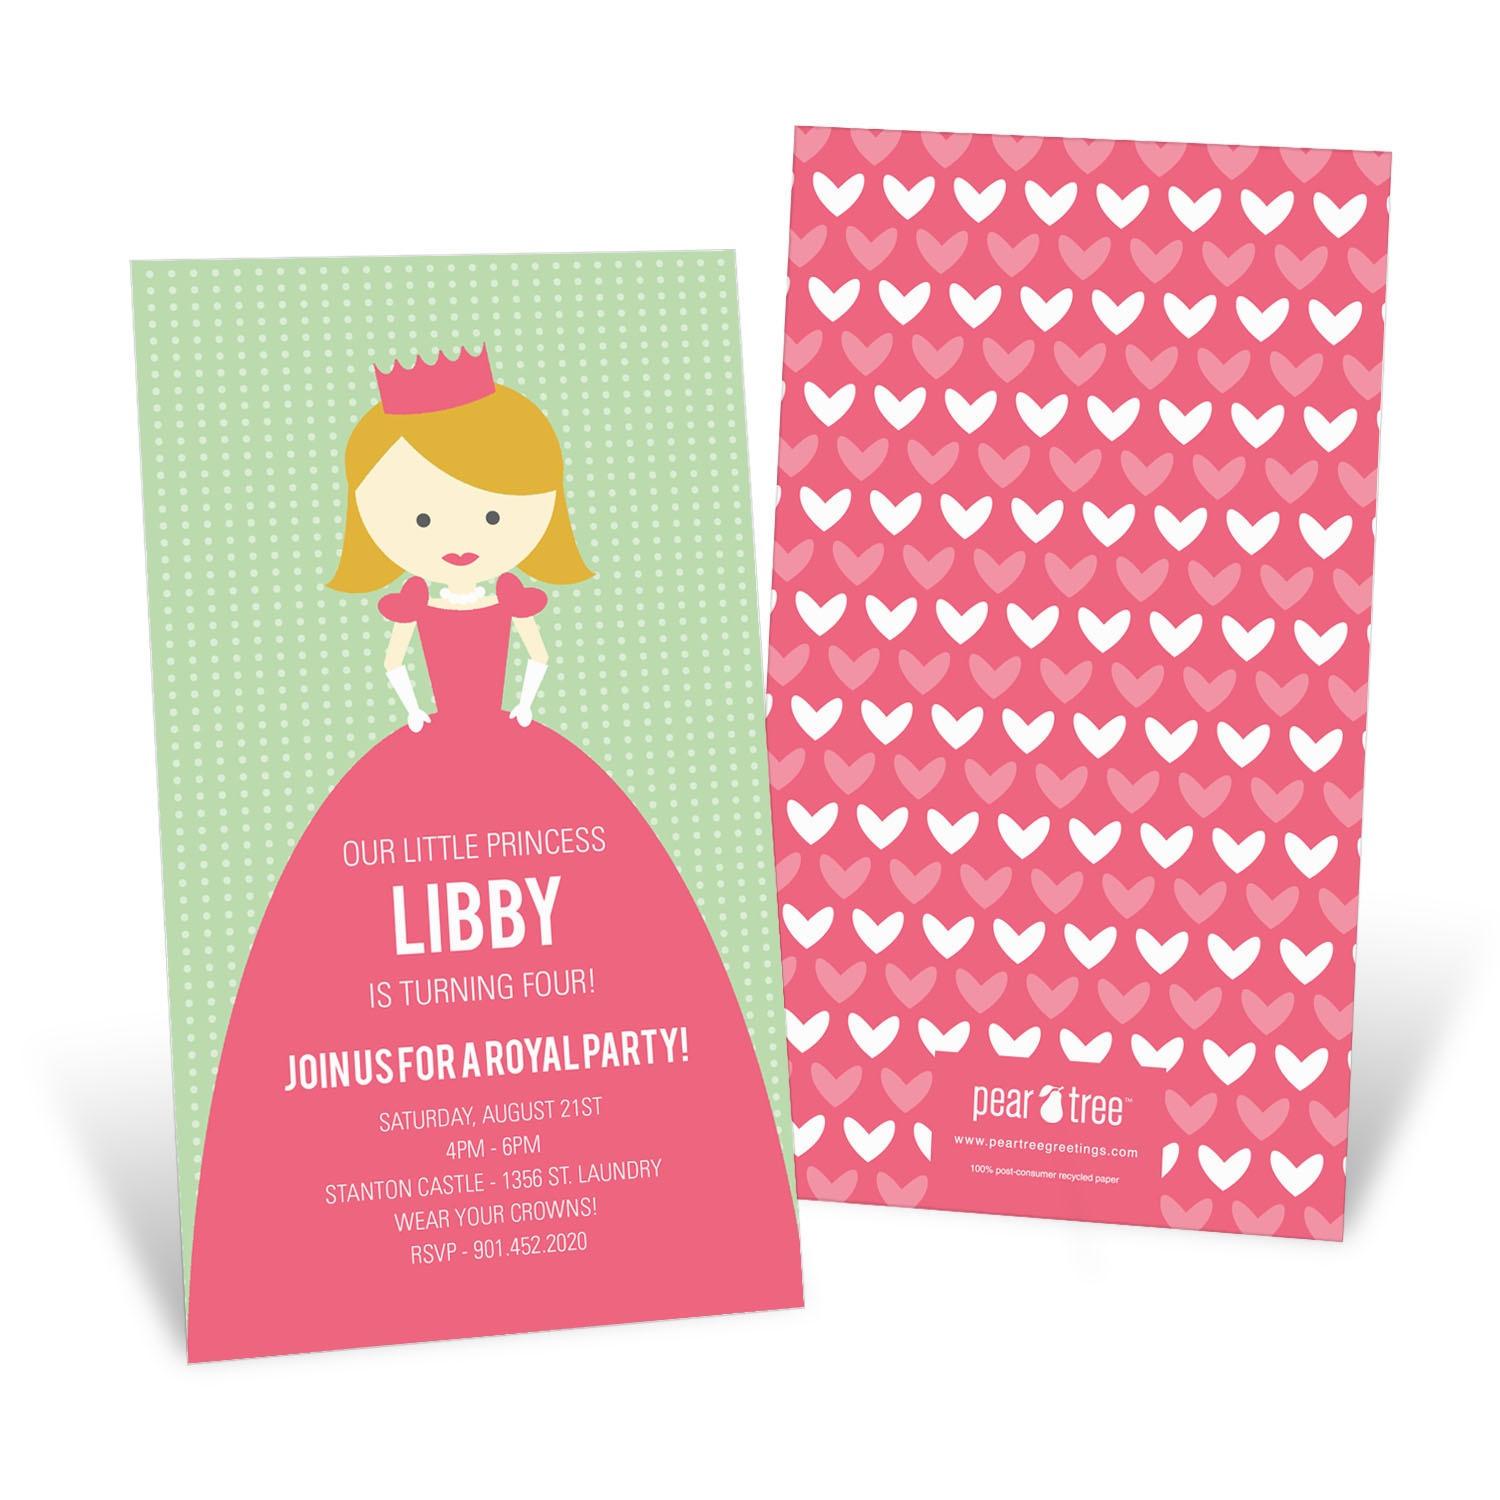 A Princess Like Me Kids Birthday Invitations